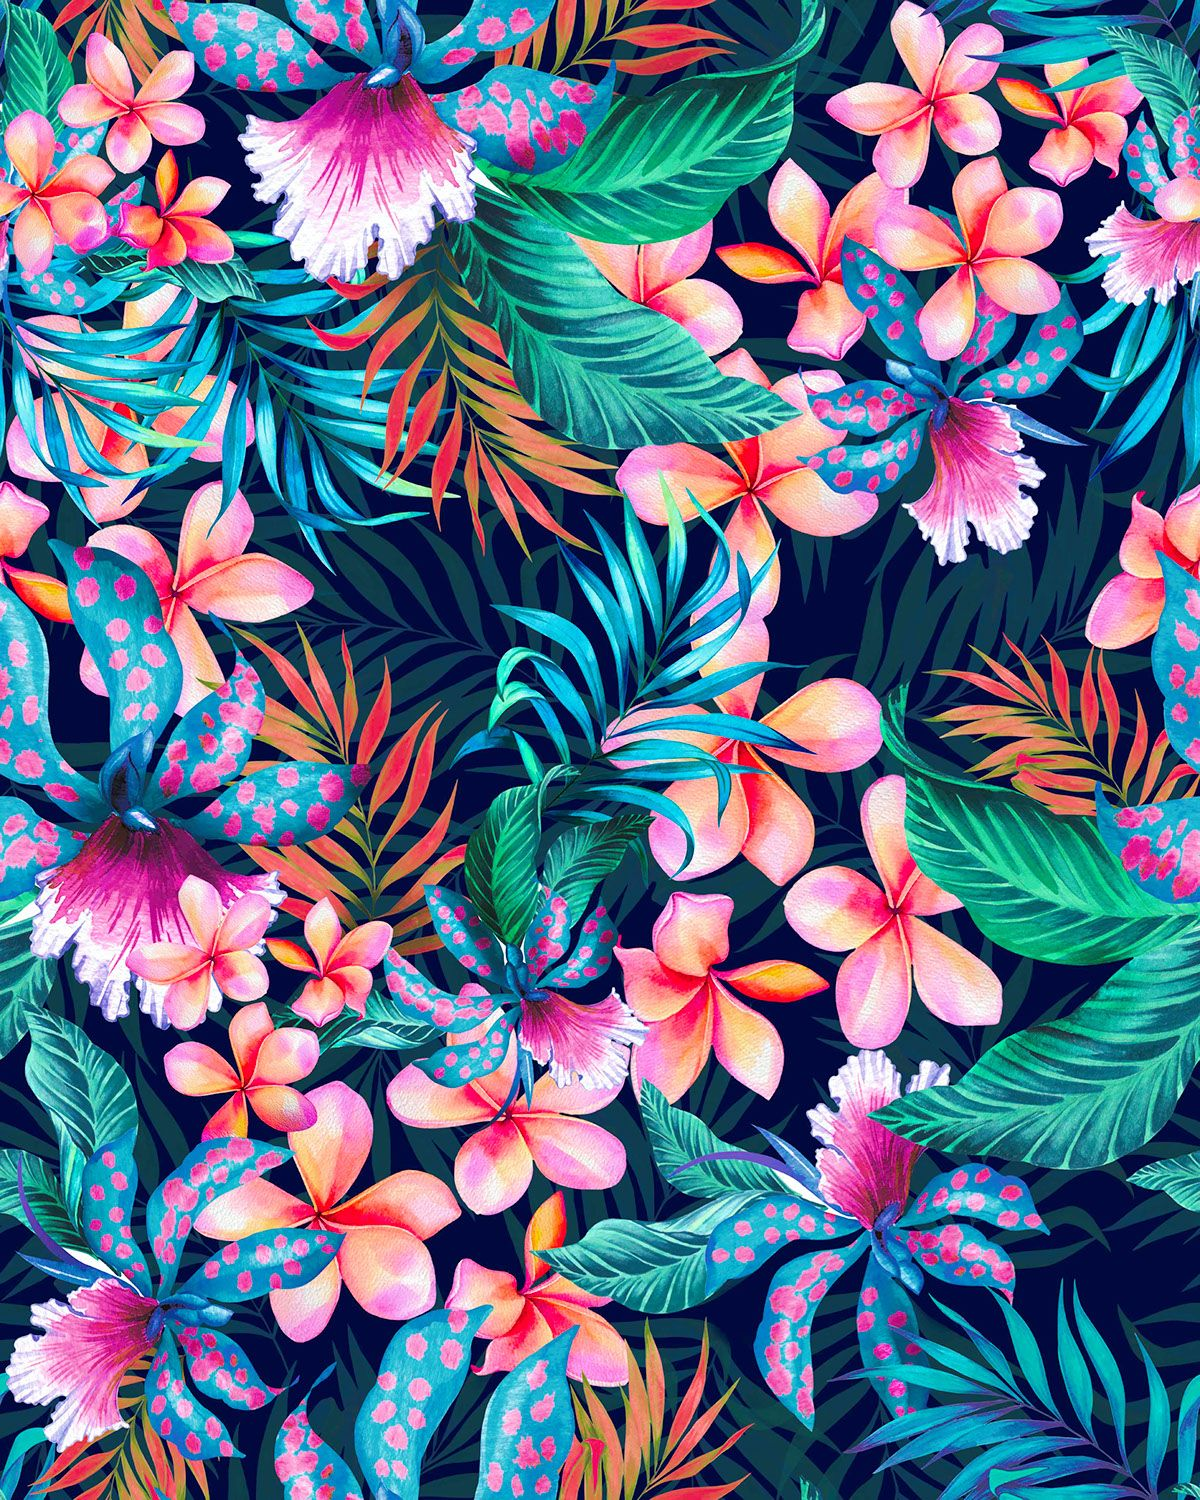 The vivid use of color to give life to every type of flower and ...